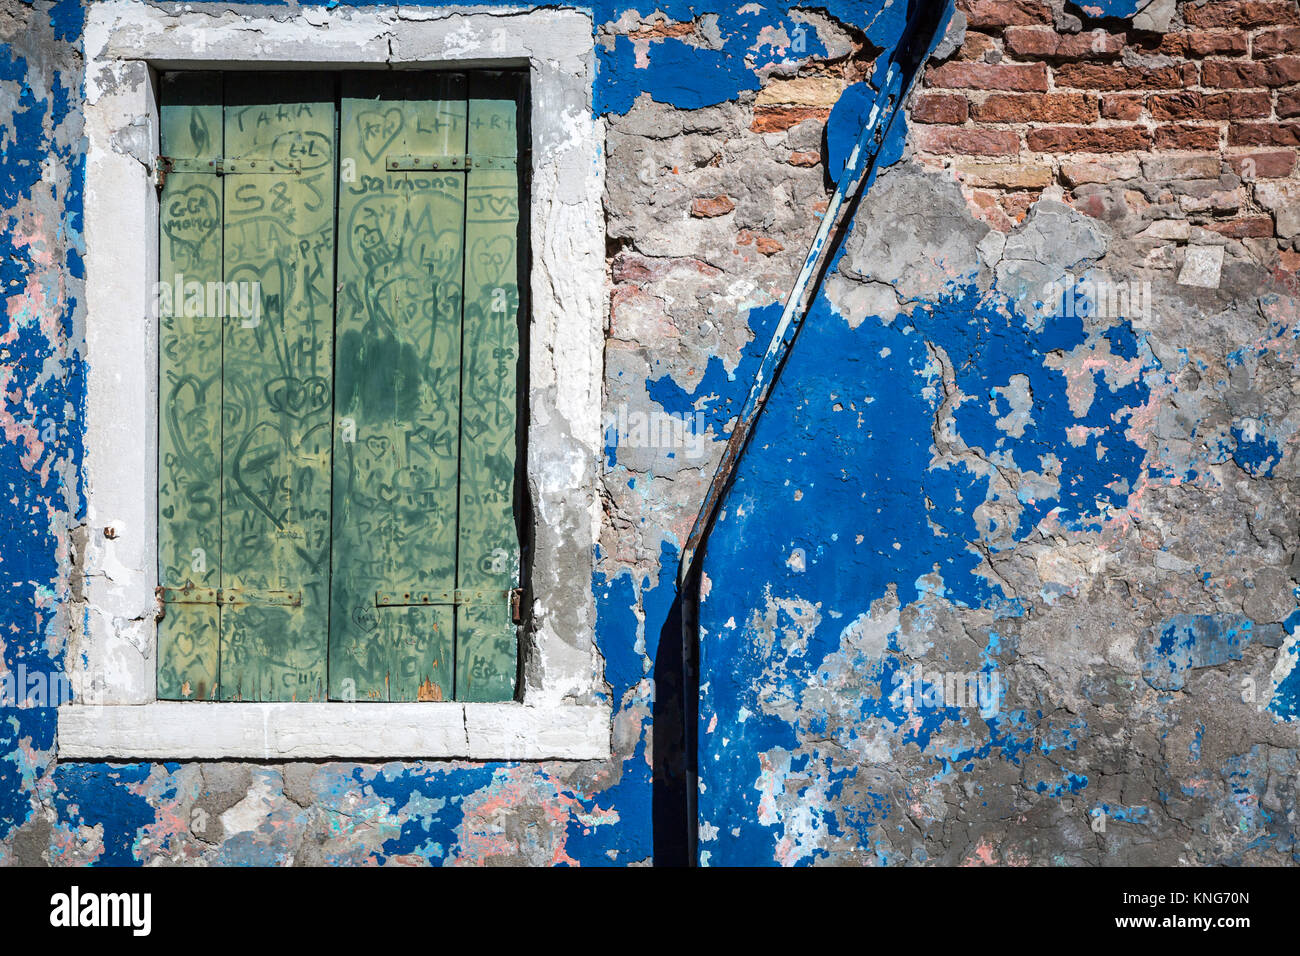 An old building with peeling paint in the Venetian village of Burano, Venice, Italy, Europe. - Stock Image